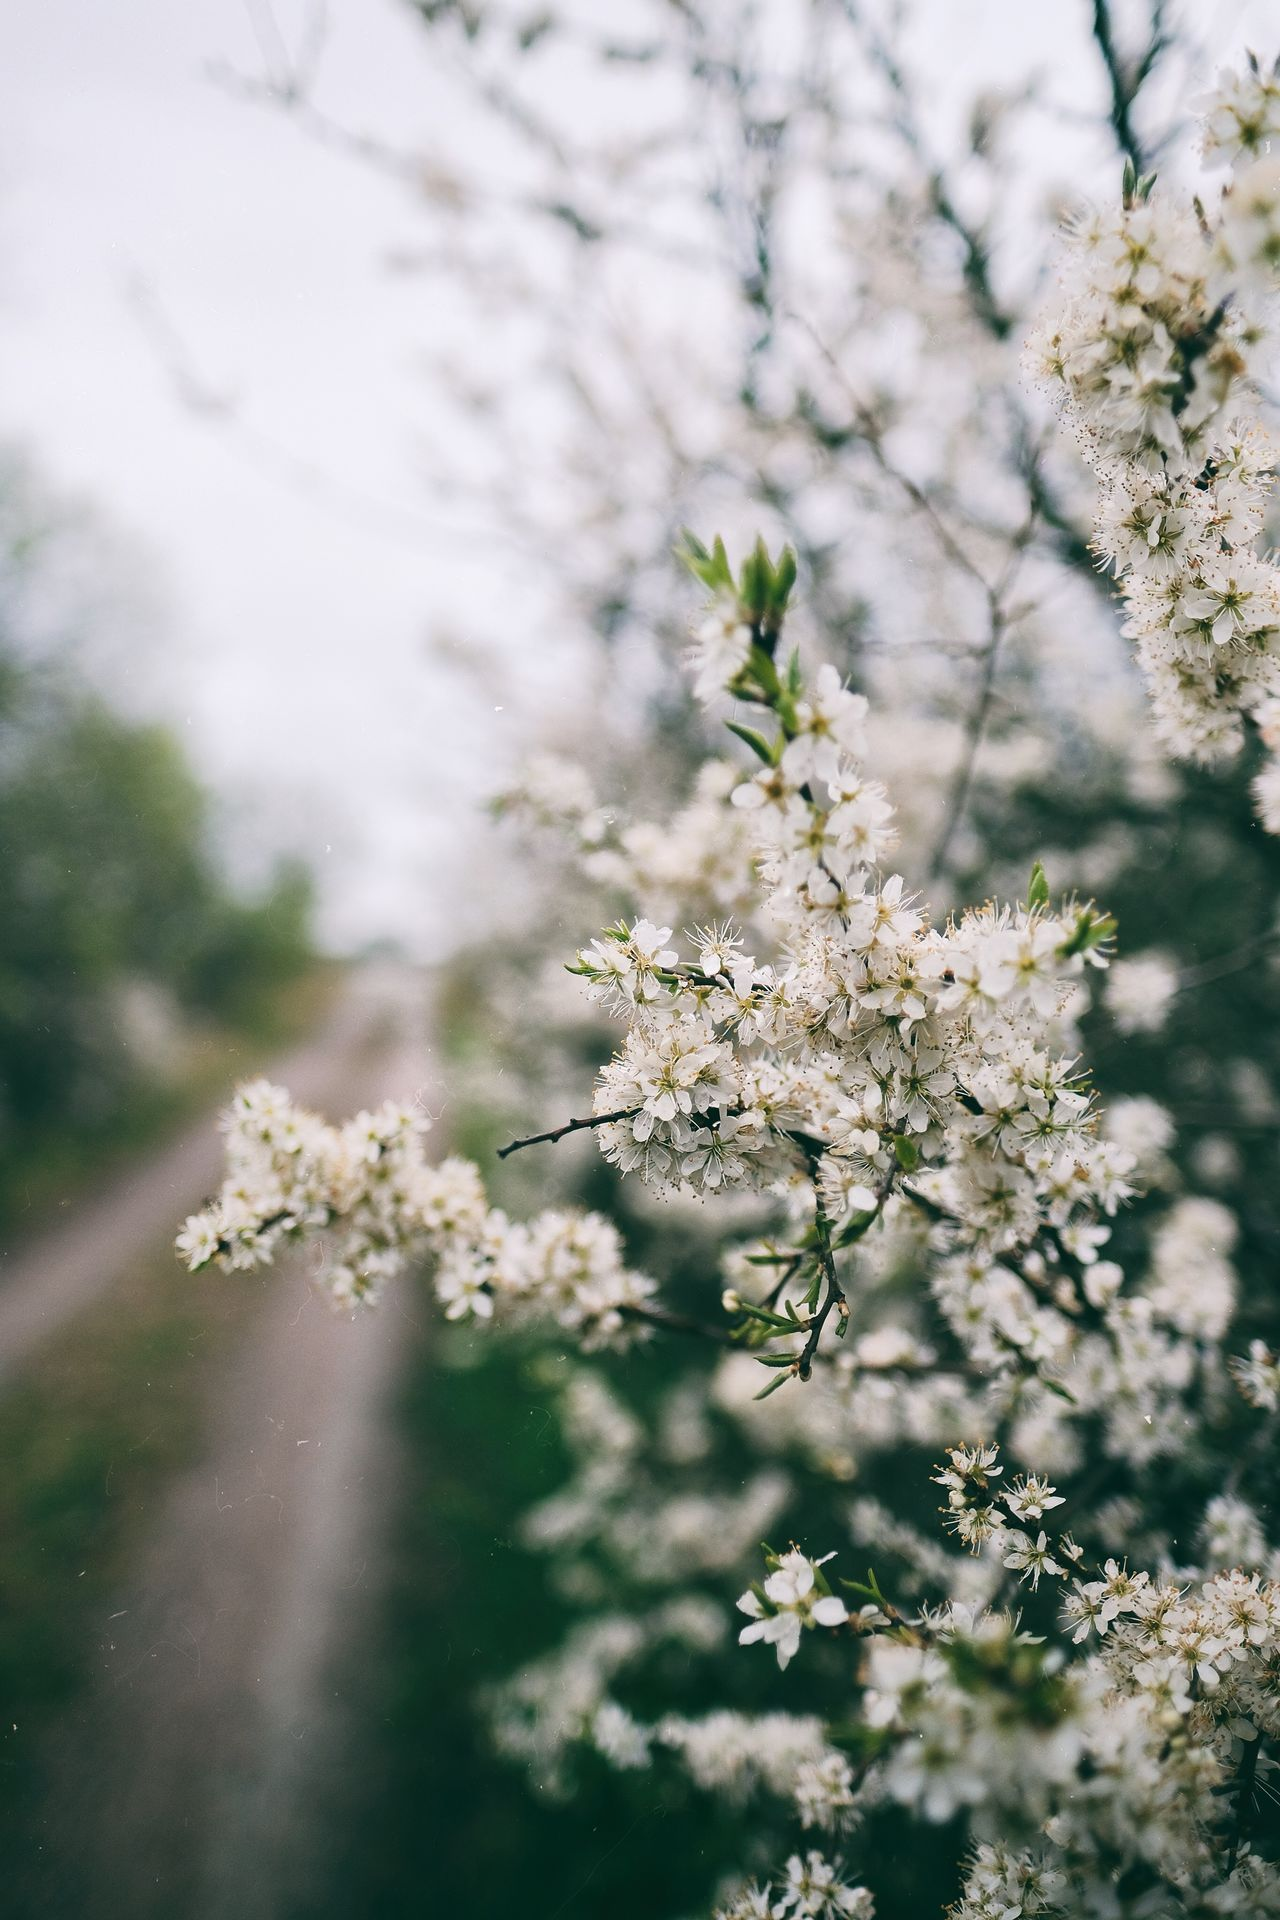 Vintage feeling Blossom White Color Beauty In Nature Nature Freshness Taking Photos Enjoying Life Eyeem Sweden X-Shooter Sotenäs Kungshamn Fujifilm X-t2 XF16mmF1.4 Sweden FUJIFILM X-T2 Sverigebilder Svensk Natur EyeEm Best Shots Vintage Feeling Sverige Dof Naturelovers EyeEm Best Shots - Nature EyeEm Nature Lover